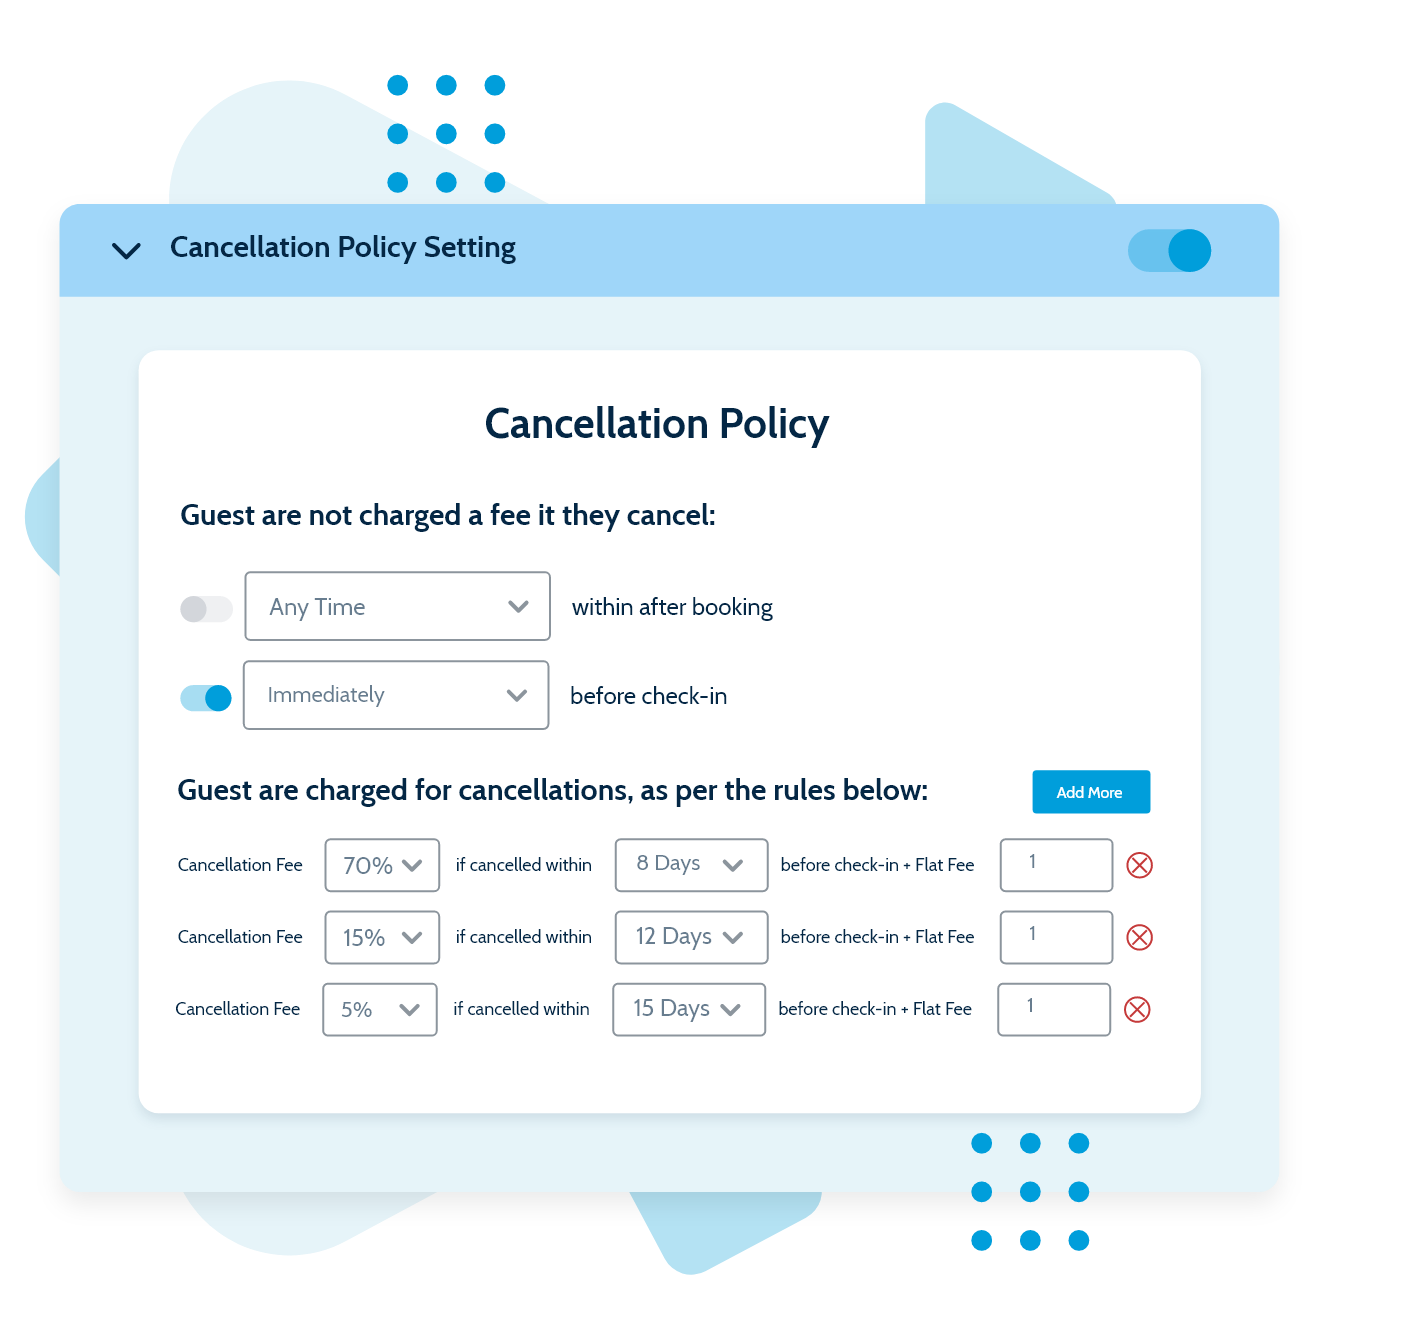 reservation Cancellation Policy Setting